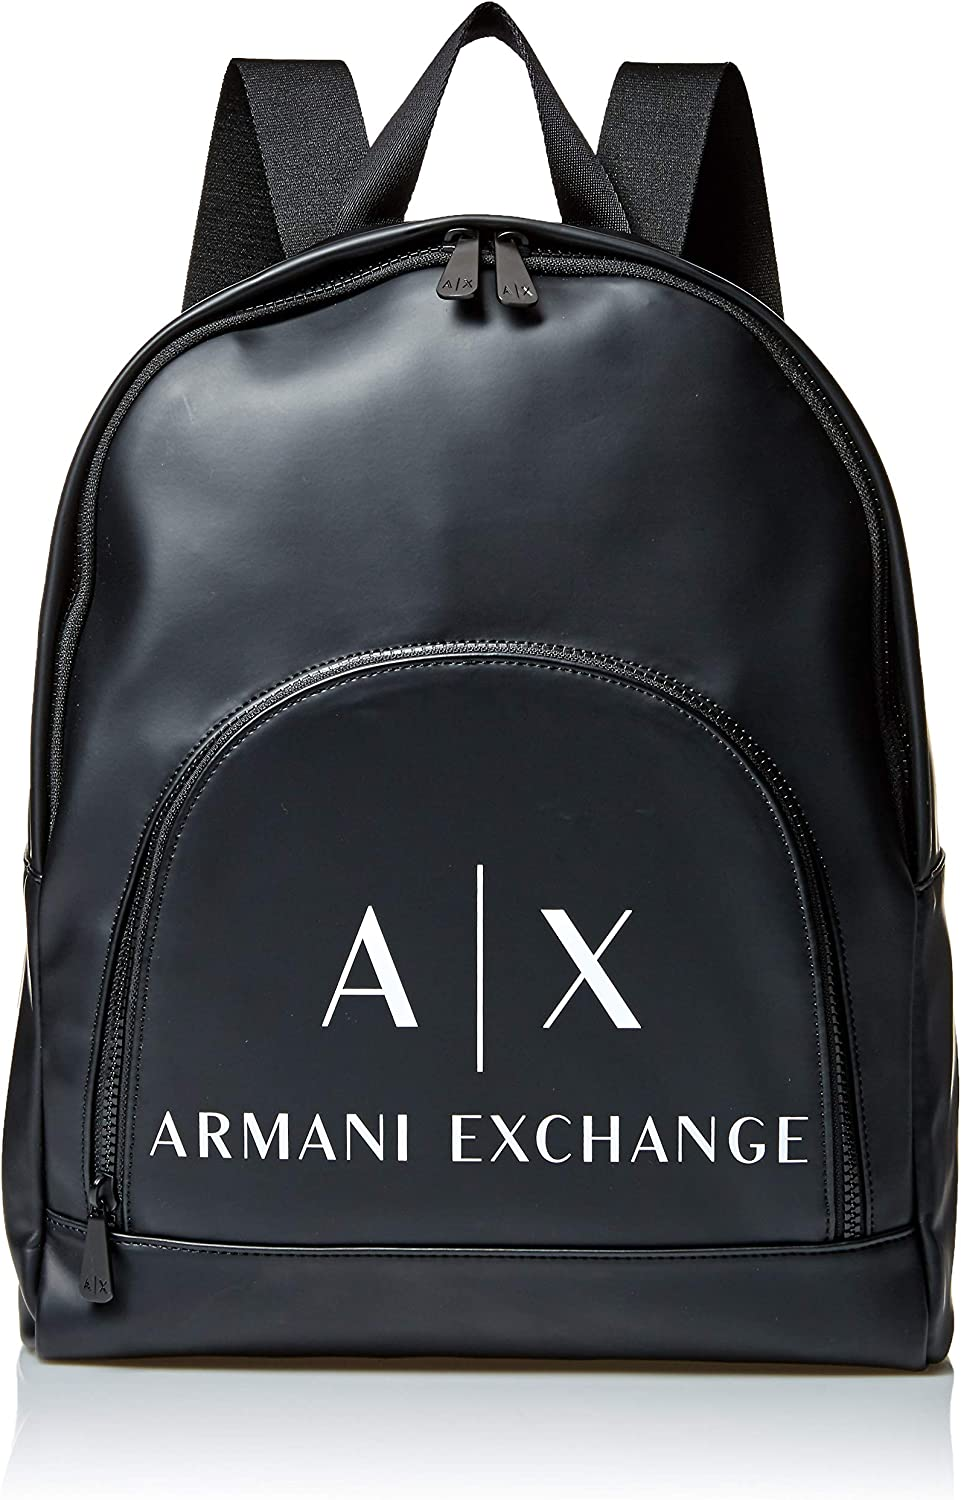 A X Armani Exchange Logo Front Pocket Backpack